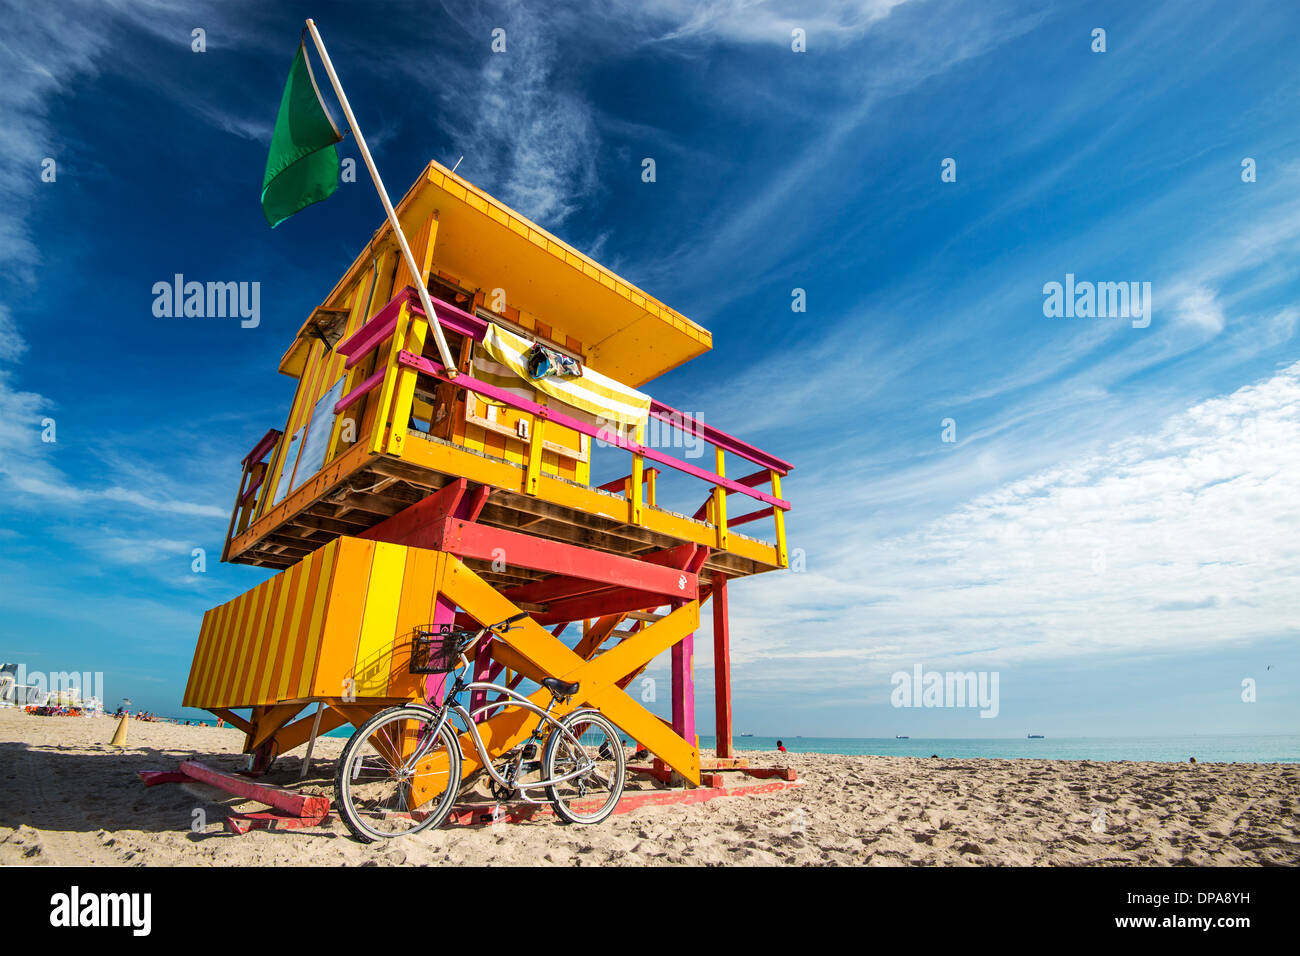 South Beach, Miami, Floride, USA lifeguard post. Photo Stock